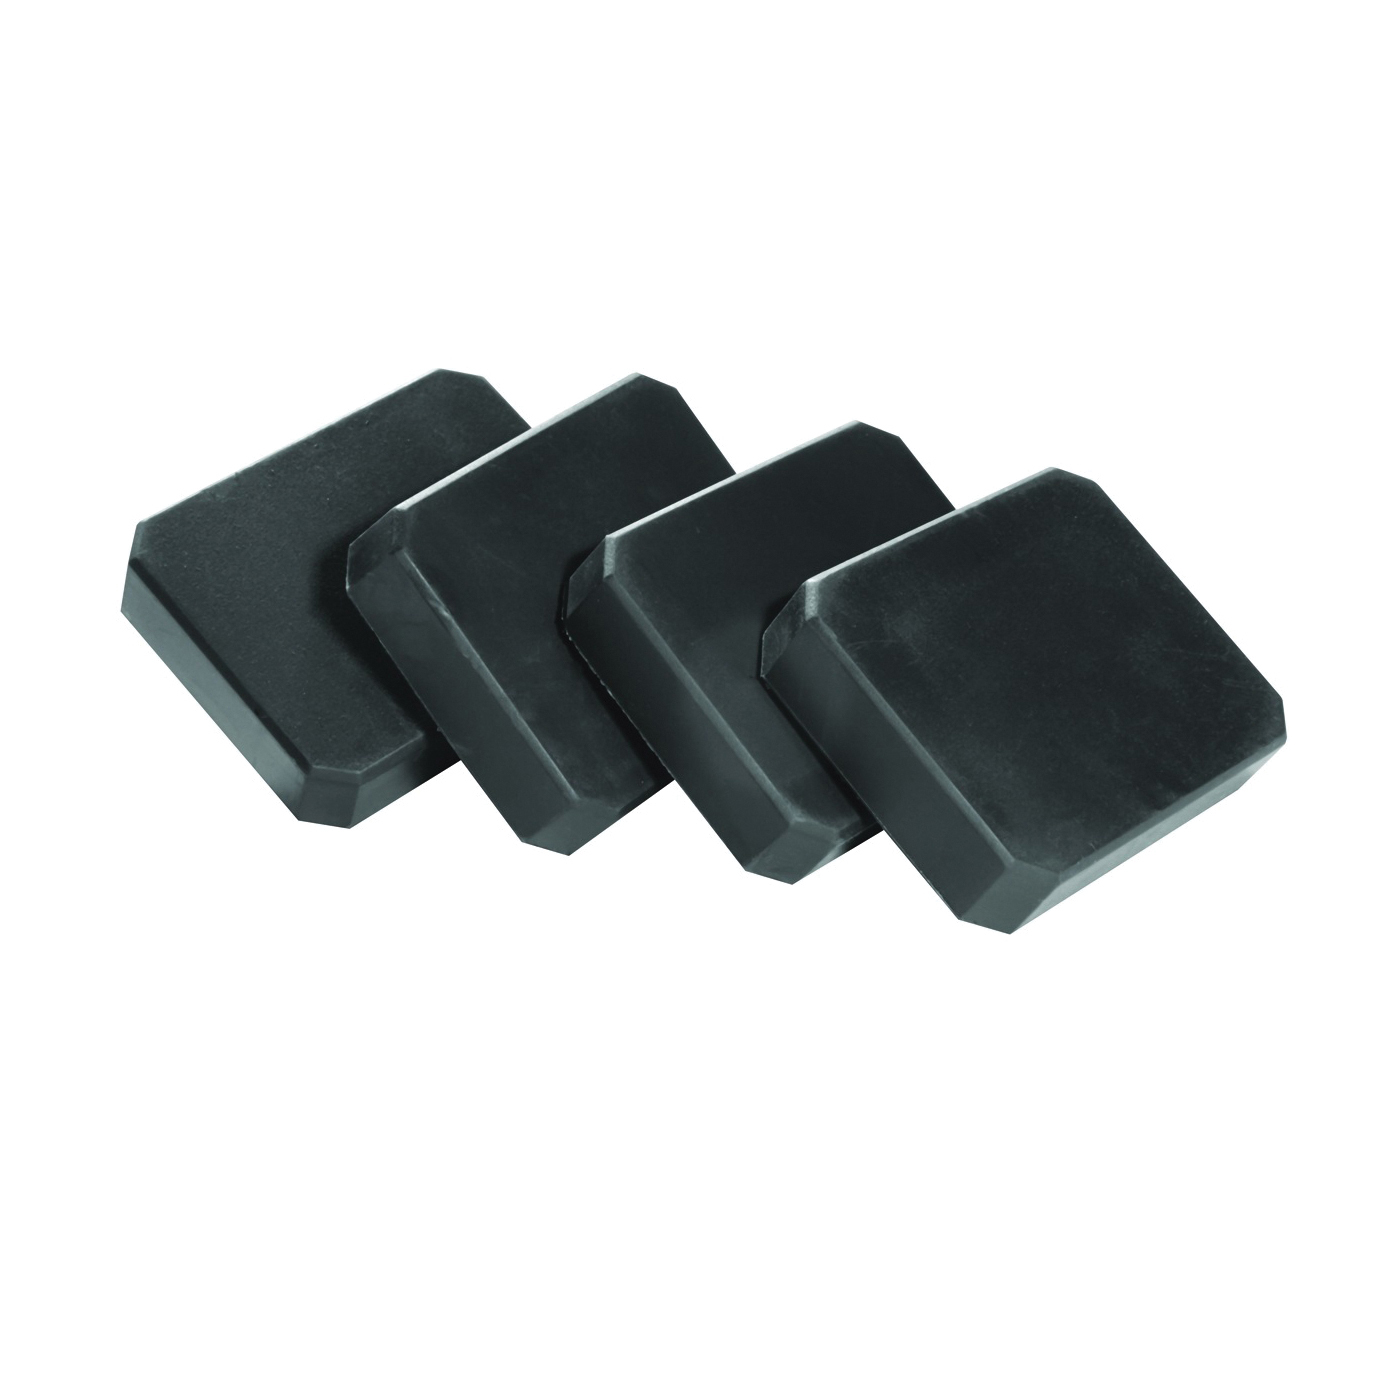 Picture of IRWIN 1826577 Replacement Pad, For: SL300s, 506QCN, 512QCN, 518QCN, 524QCN, 536QCN